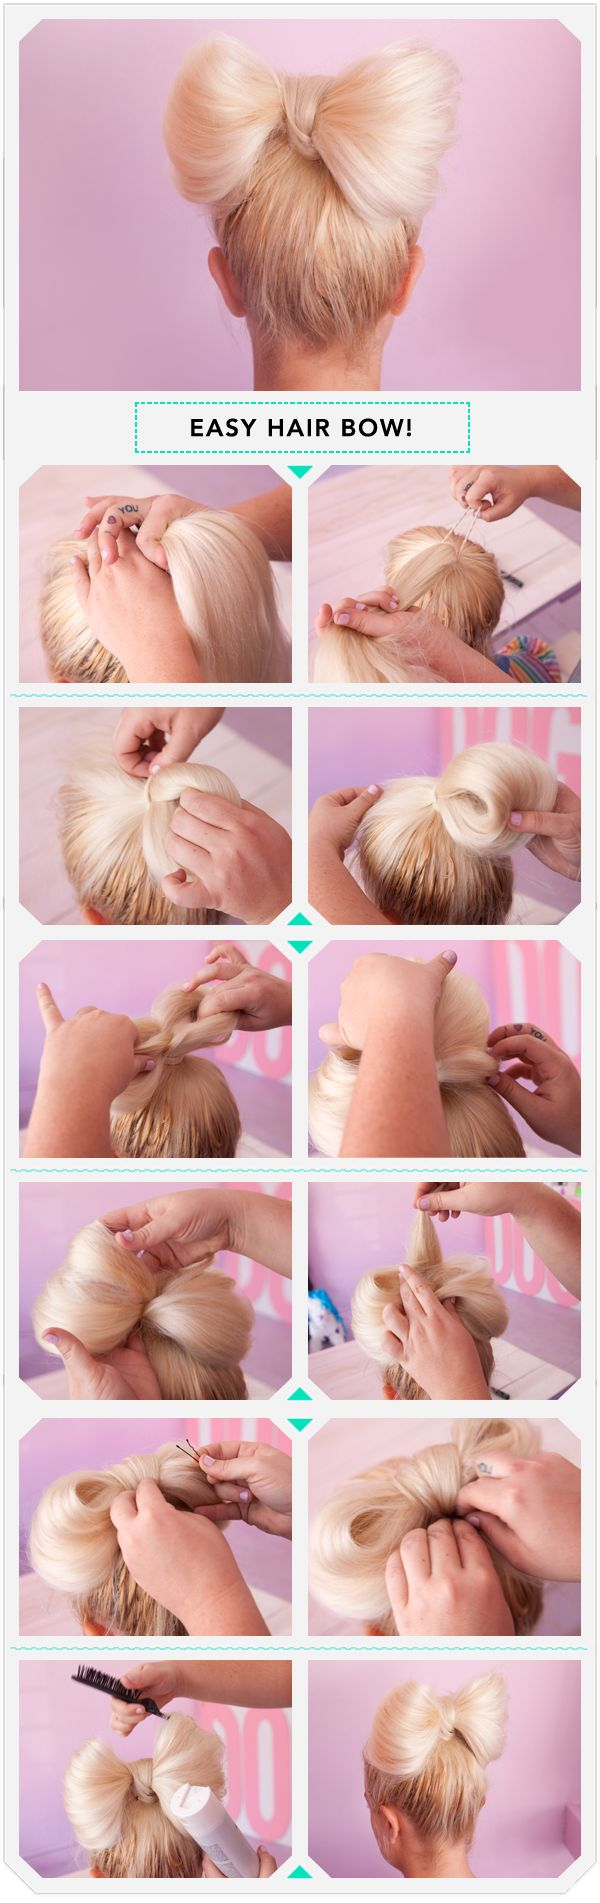 How to Do the Hair Bow